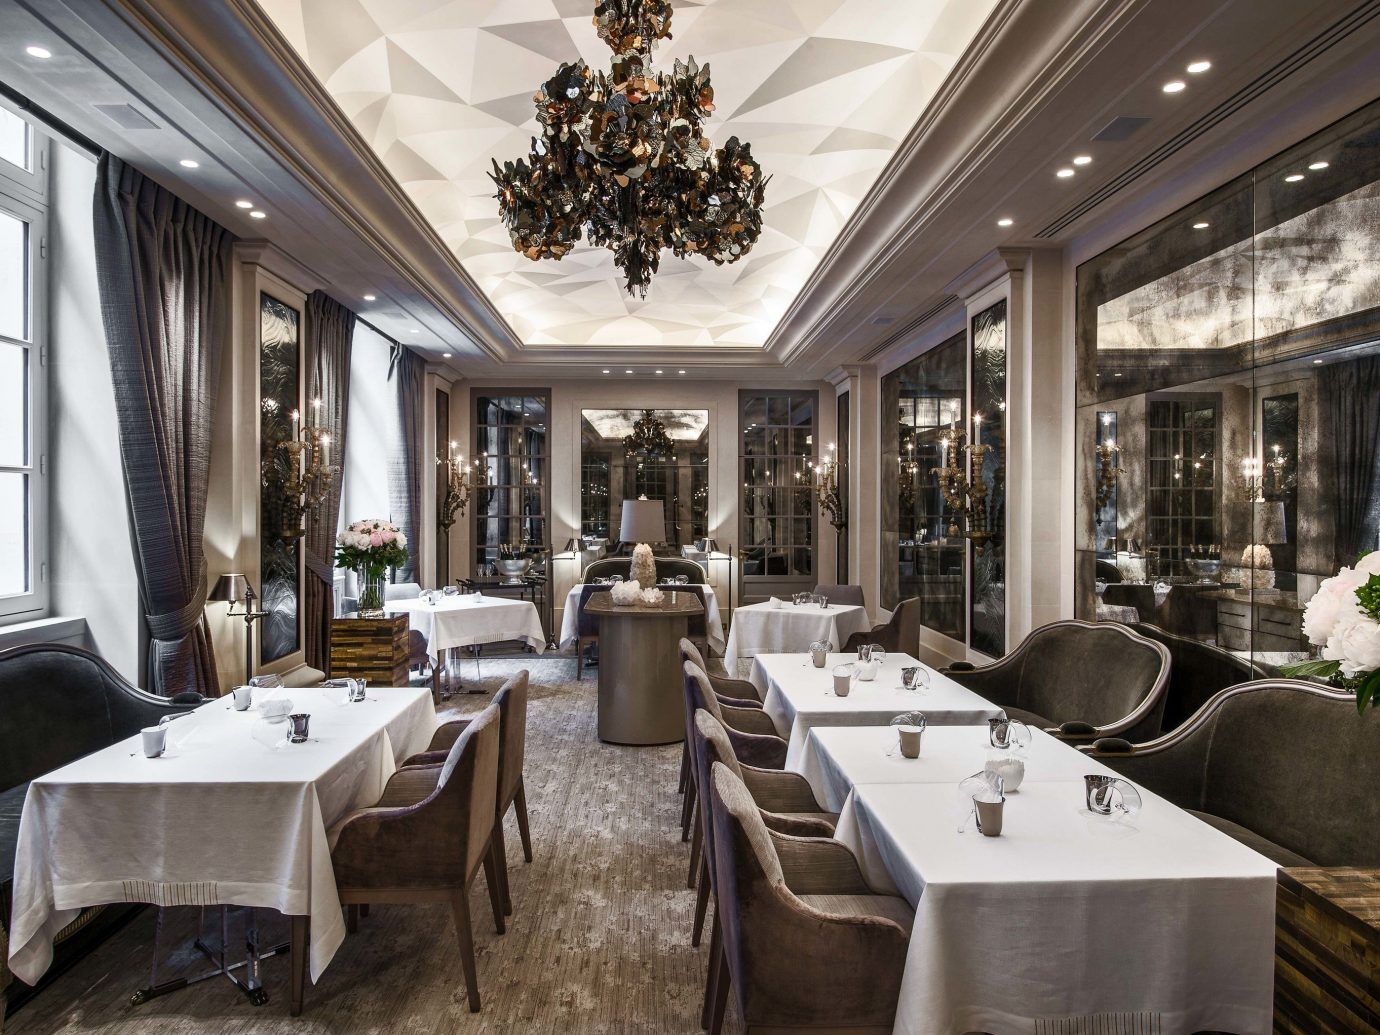 europe Trip Ideas indoor window room restaurant interior design ceiling furniture several dining room